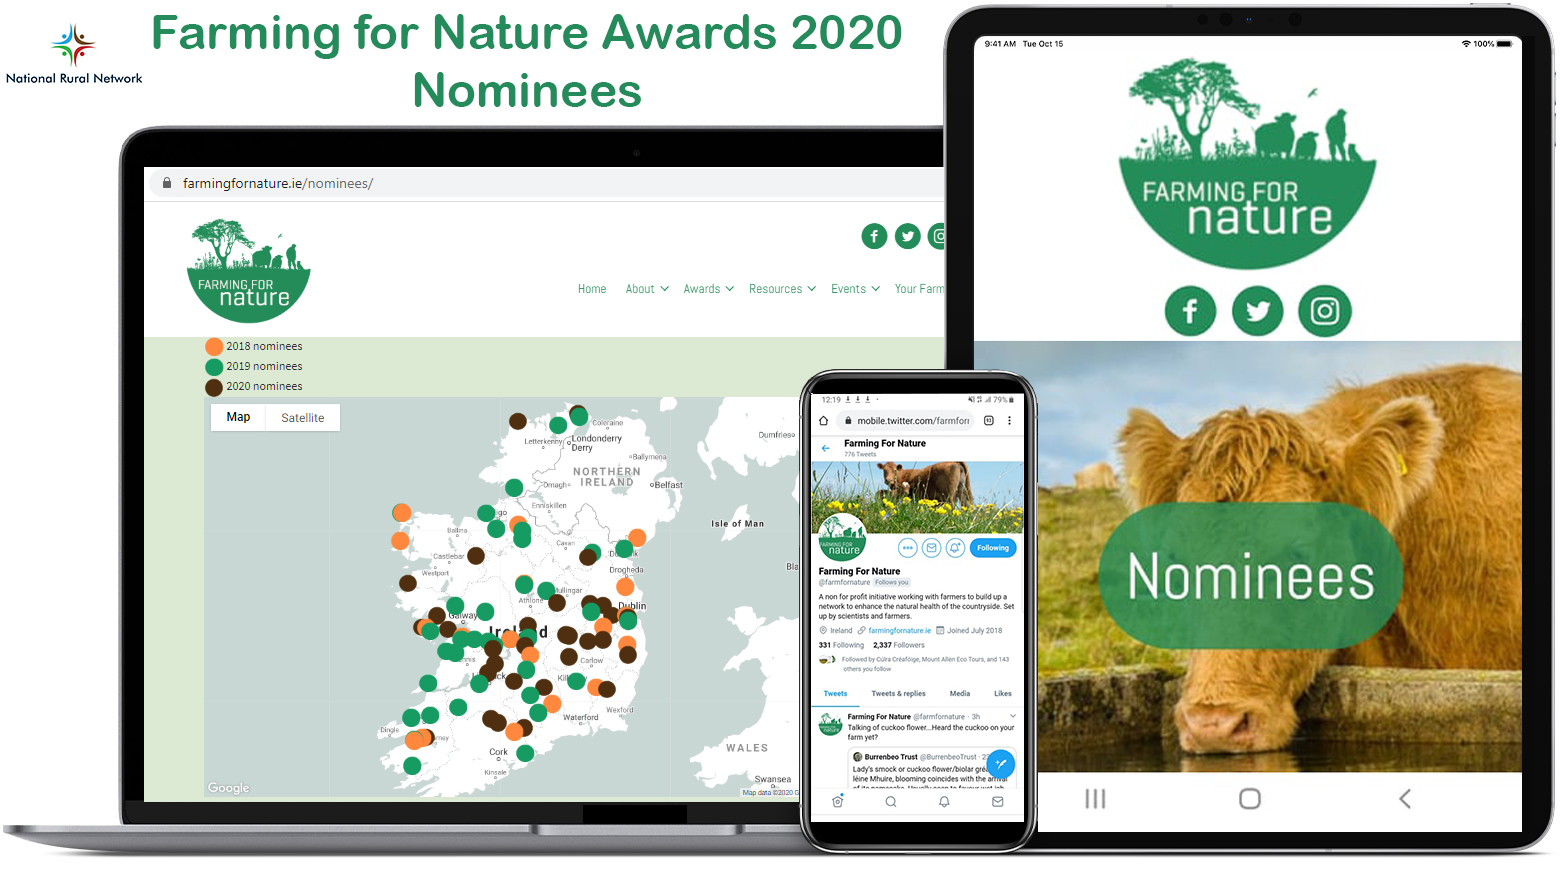 Farming for Nature Award Nominees-image